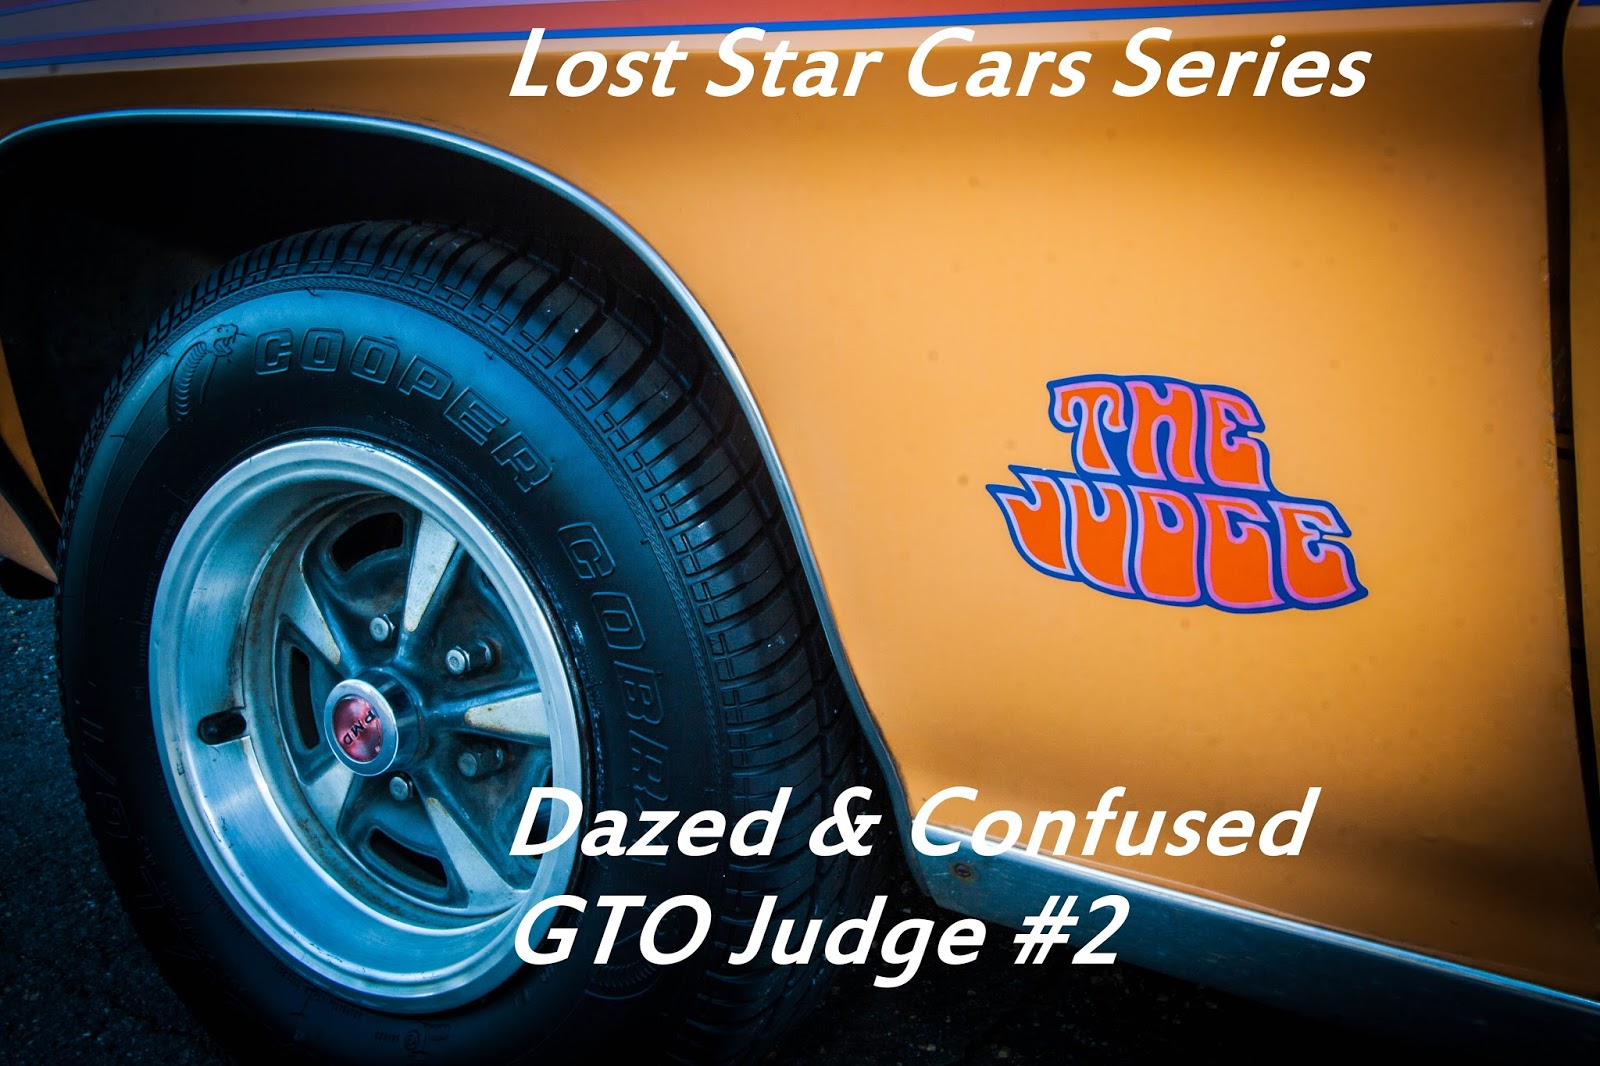 Lost Star Cars The Dazed Confused Gto Judge 2 Back Up Car About Exhaust Fan Wiring Diagram A Close Of One Iconic From 1990s Movie Era Pickfords